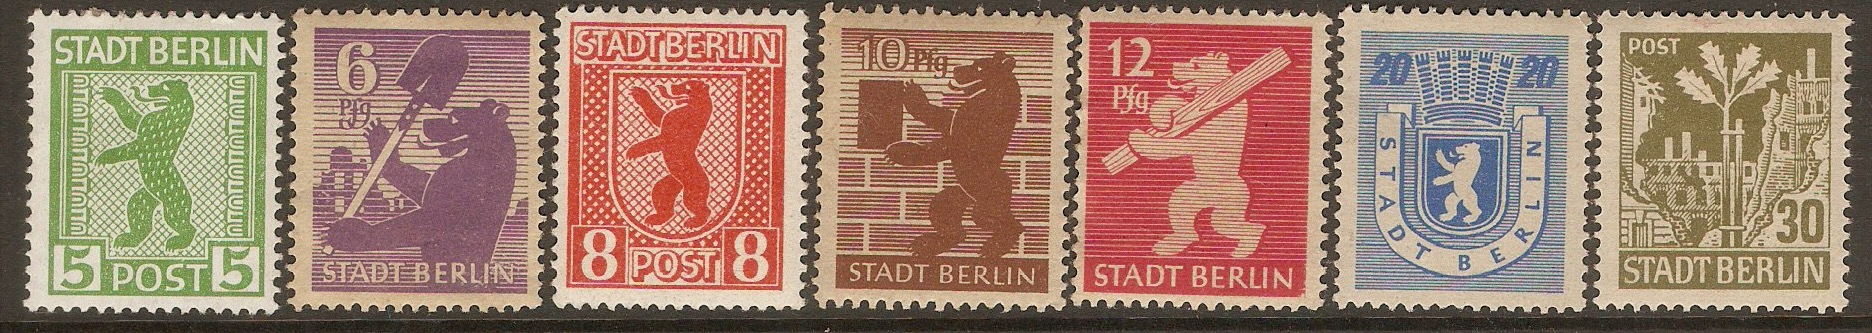 Germany 1945 Stadt Berlin set. SGRA1-SGRA7.